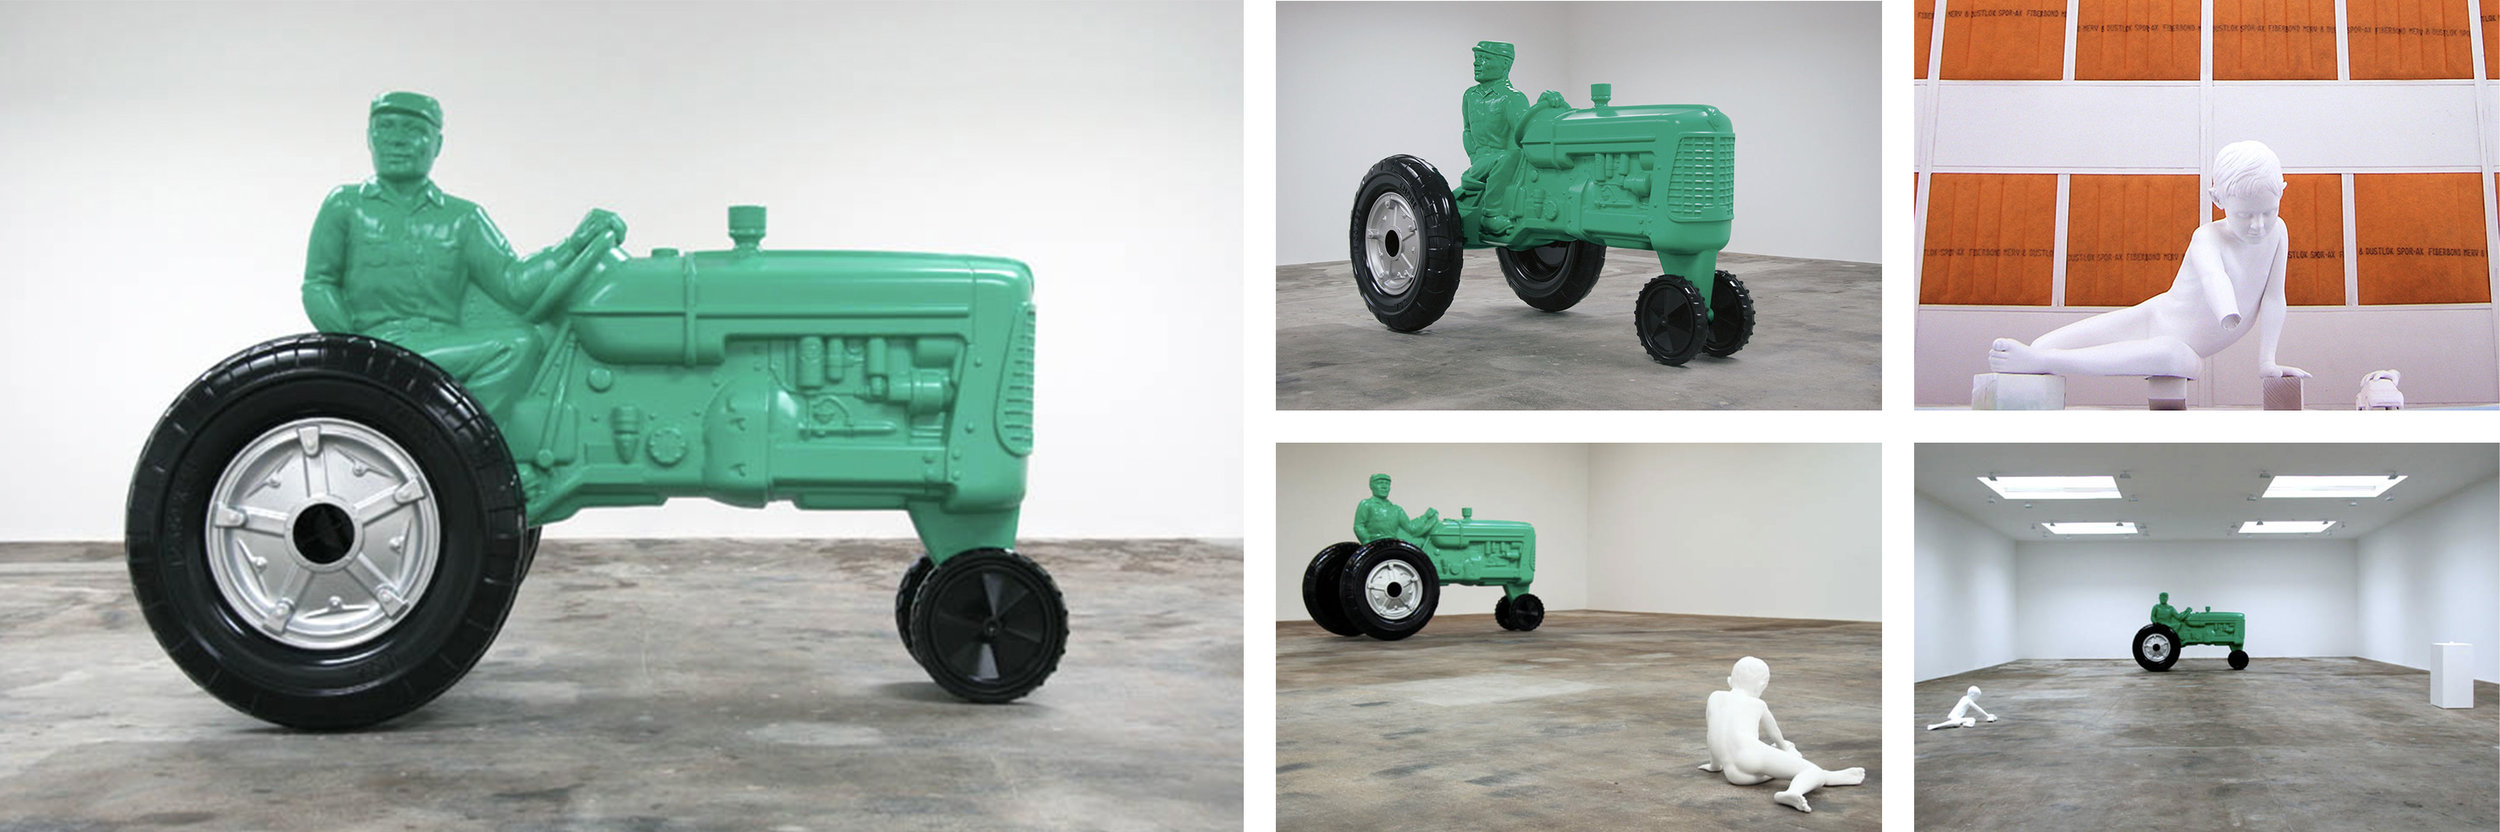 Charles Ray  Father figure 2007  Painted steel  93.75 x 137.25 x 71.75 inches      View More Charles Ray